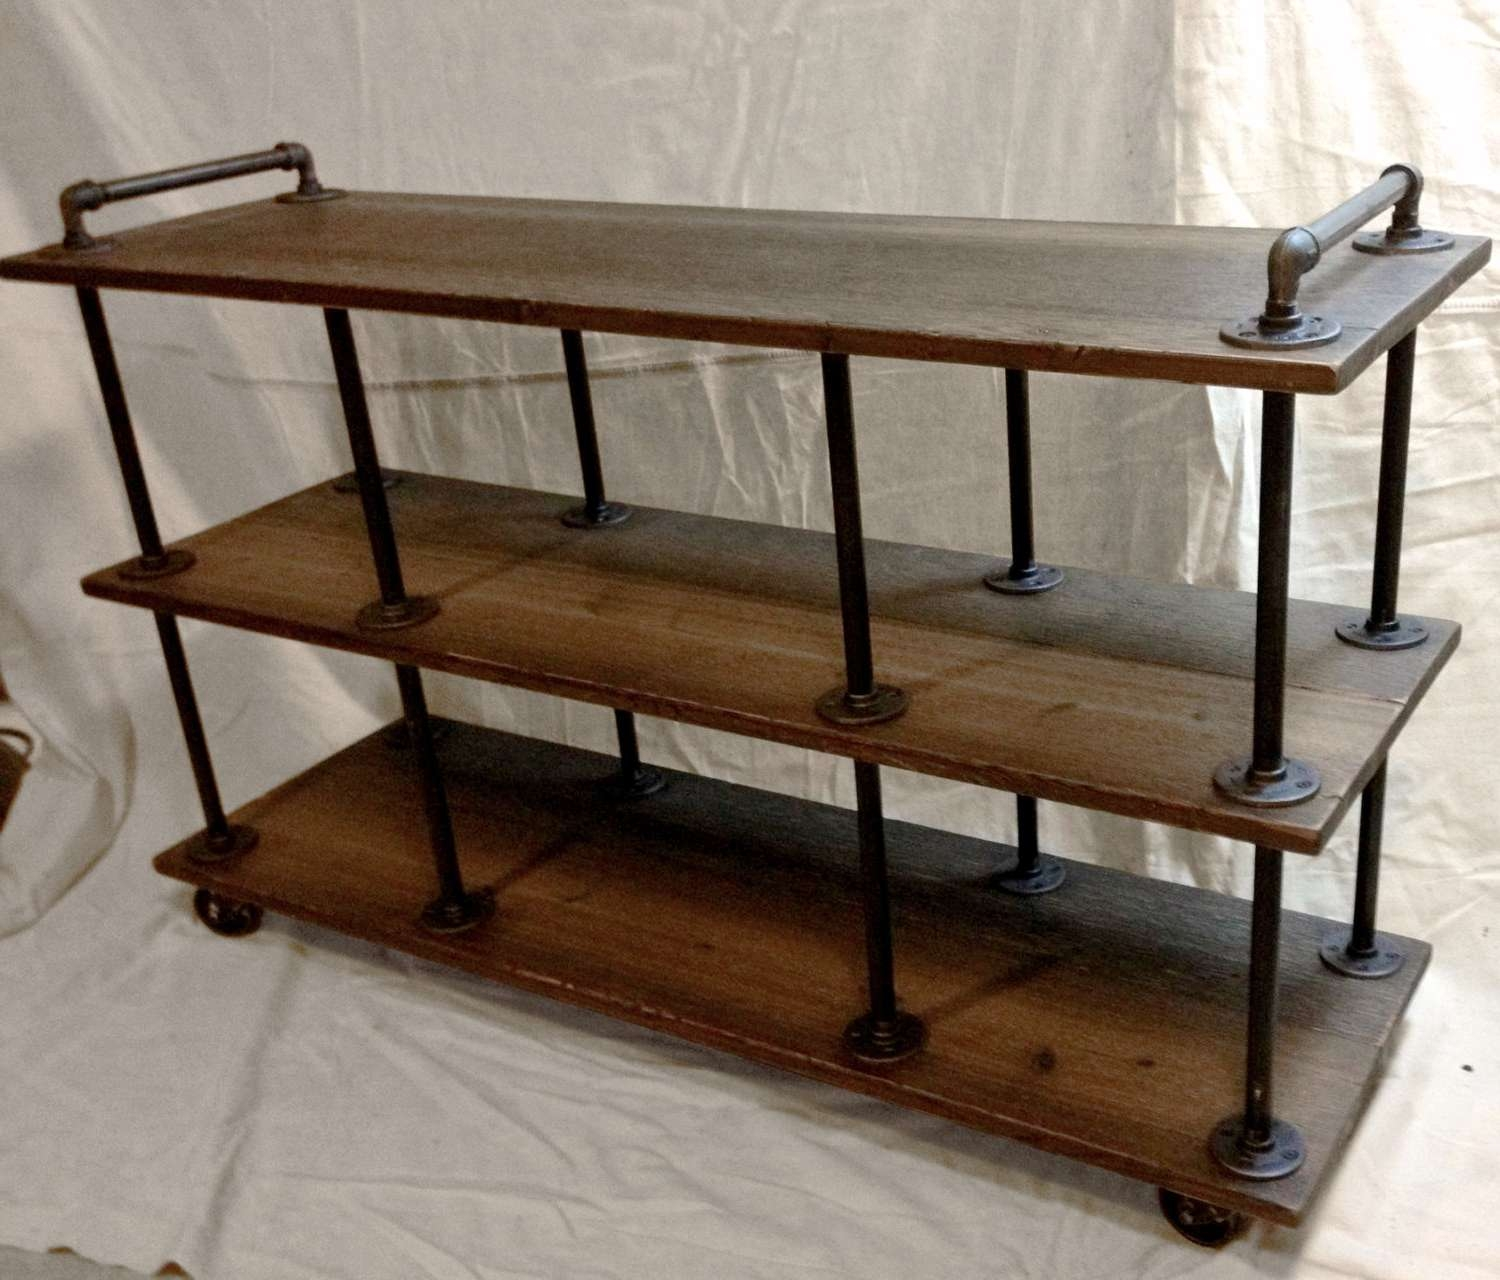 Industrial Tv Stand, Iron And Wood, For 46 To 52 Tvs Pertaining To Wooden Tv Stands With Wheels (View 9 of 15)